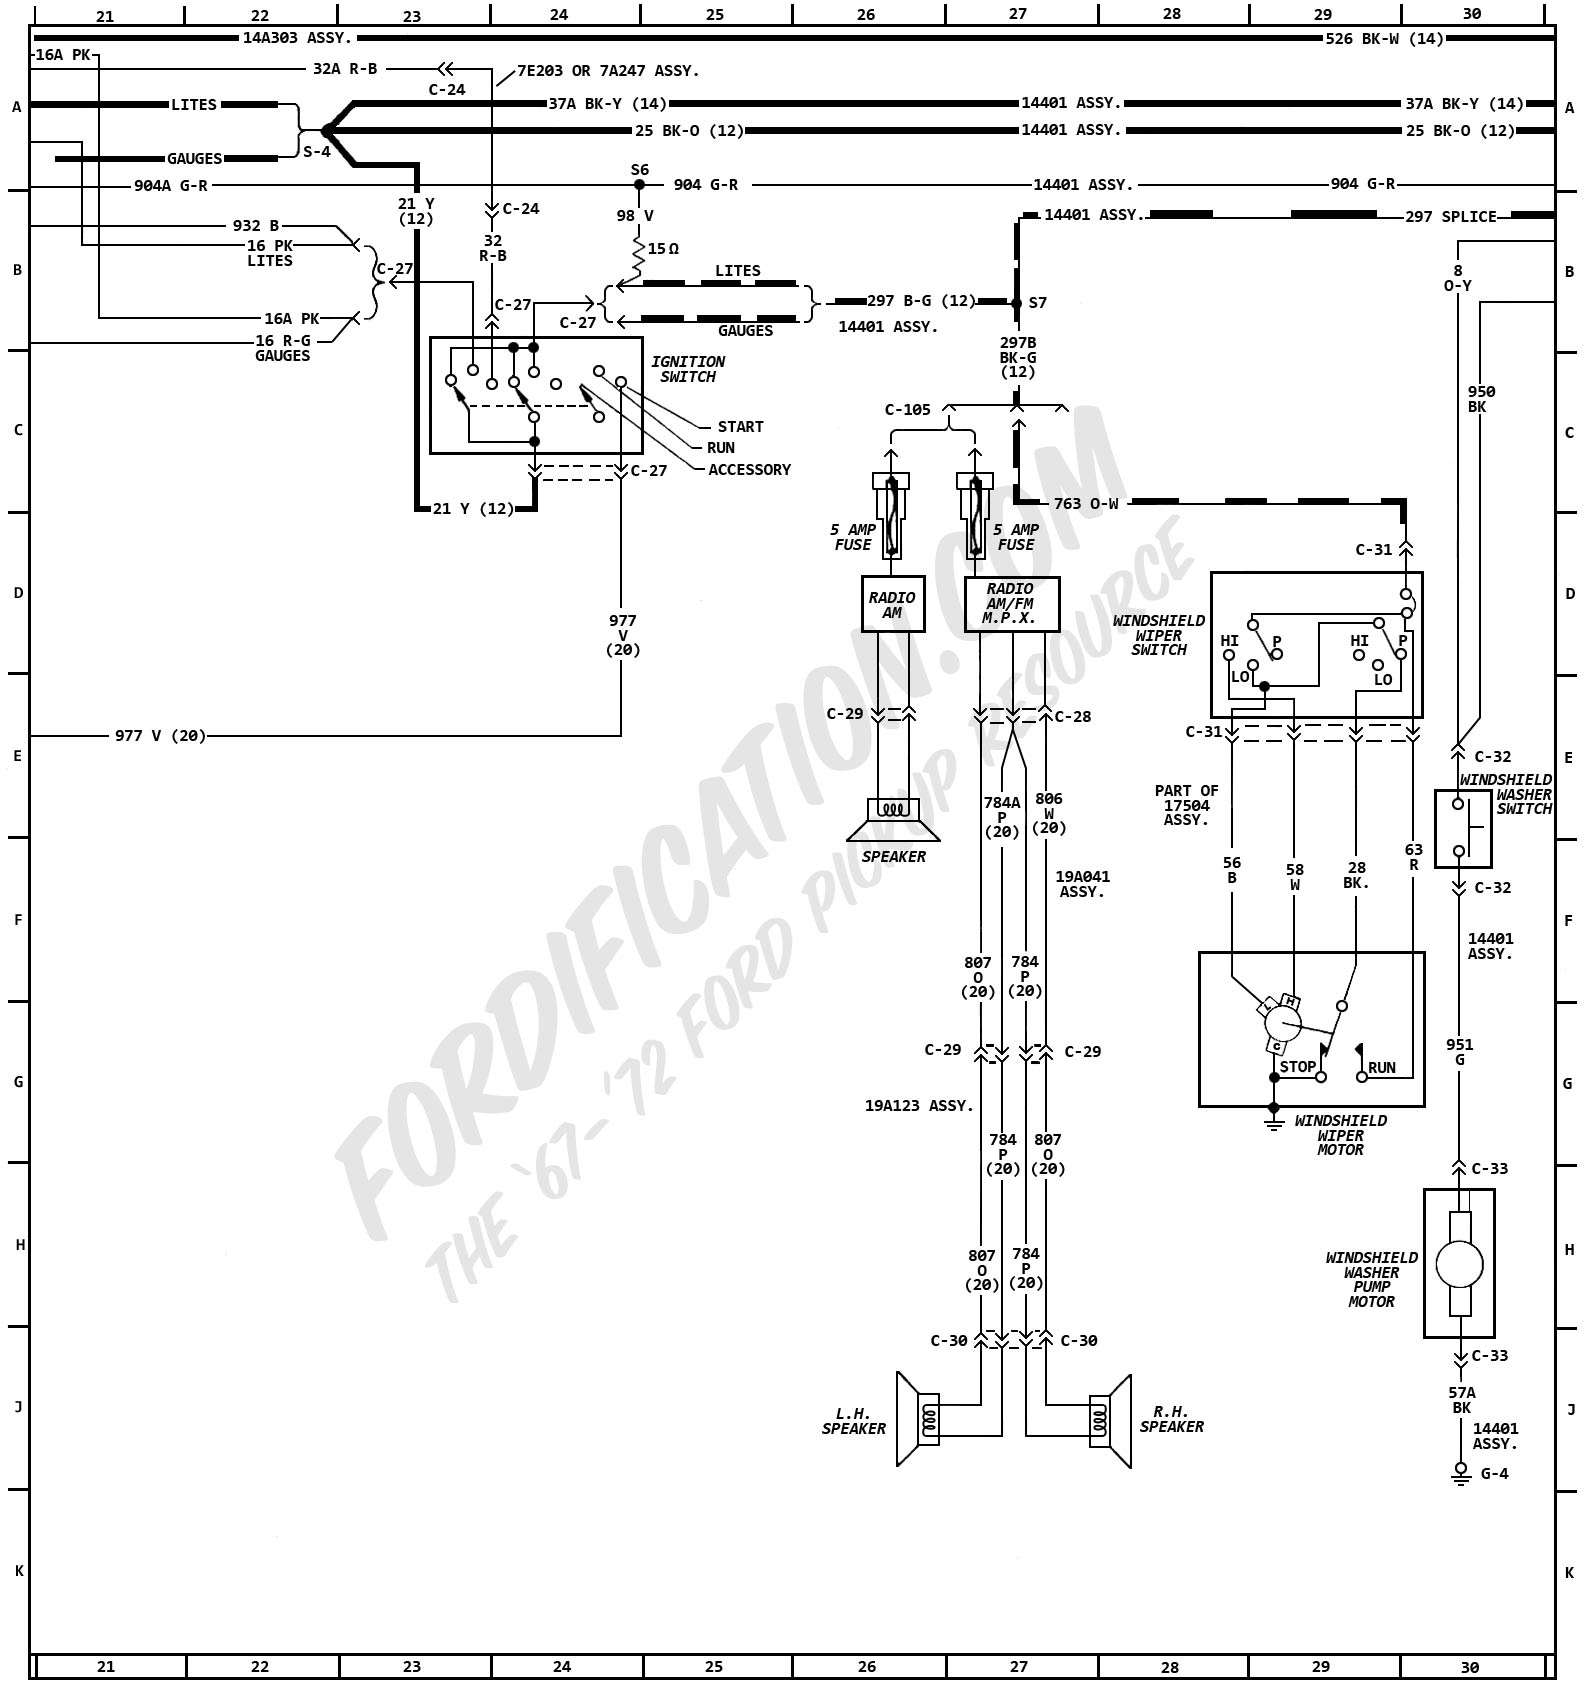 wiring diagram for ford l8000 1996 ford l8000 wiring schematic 1987 ford l8000 wiring diagram